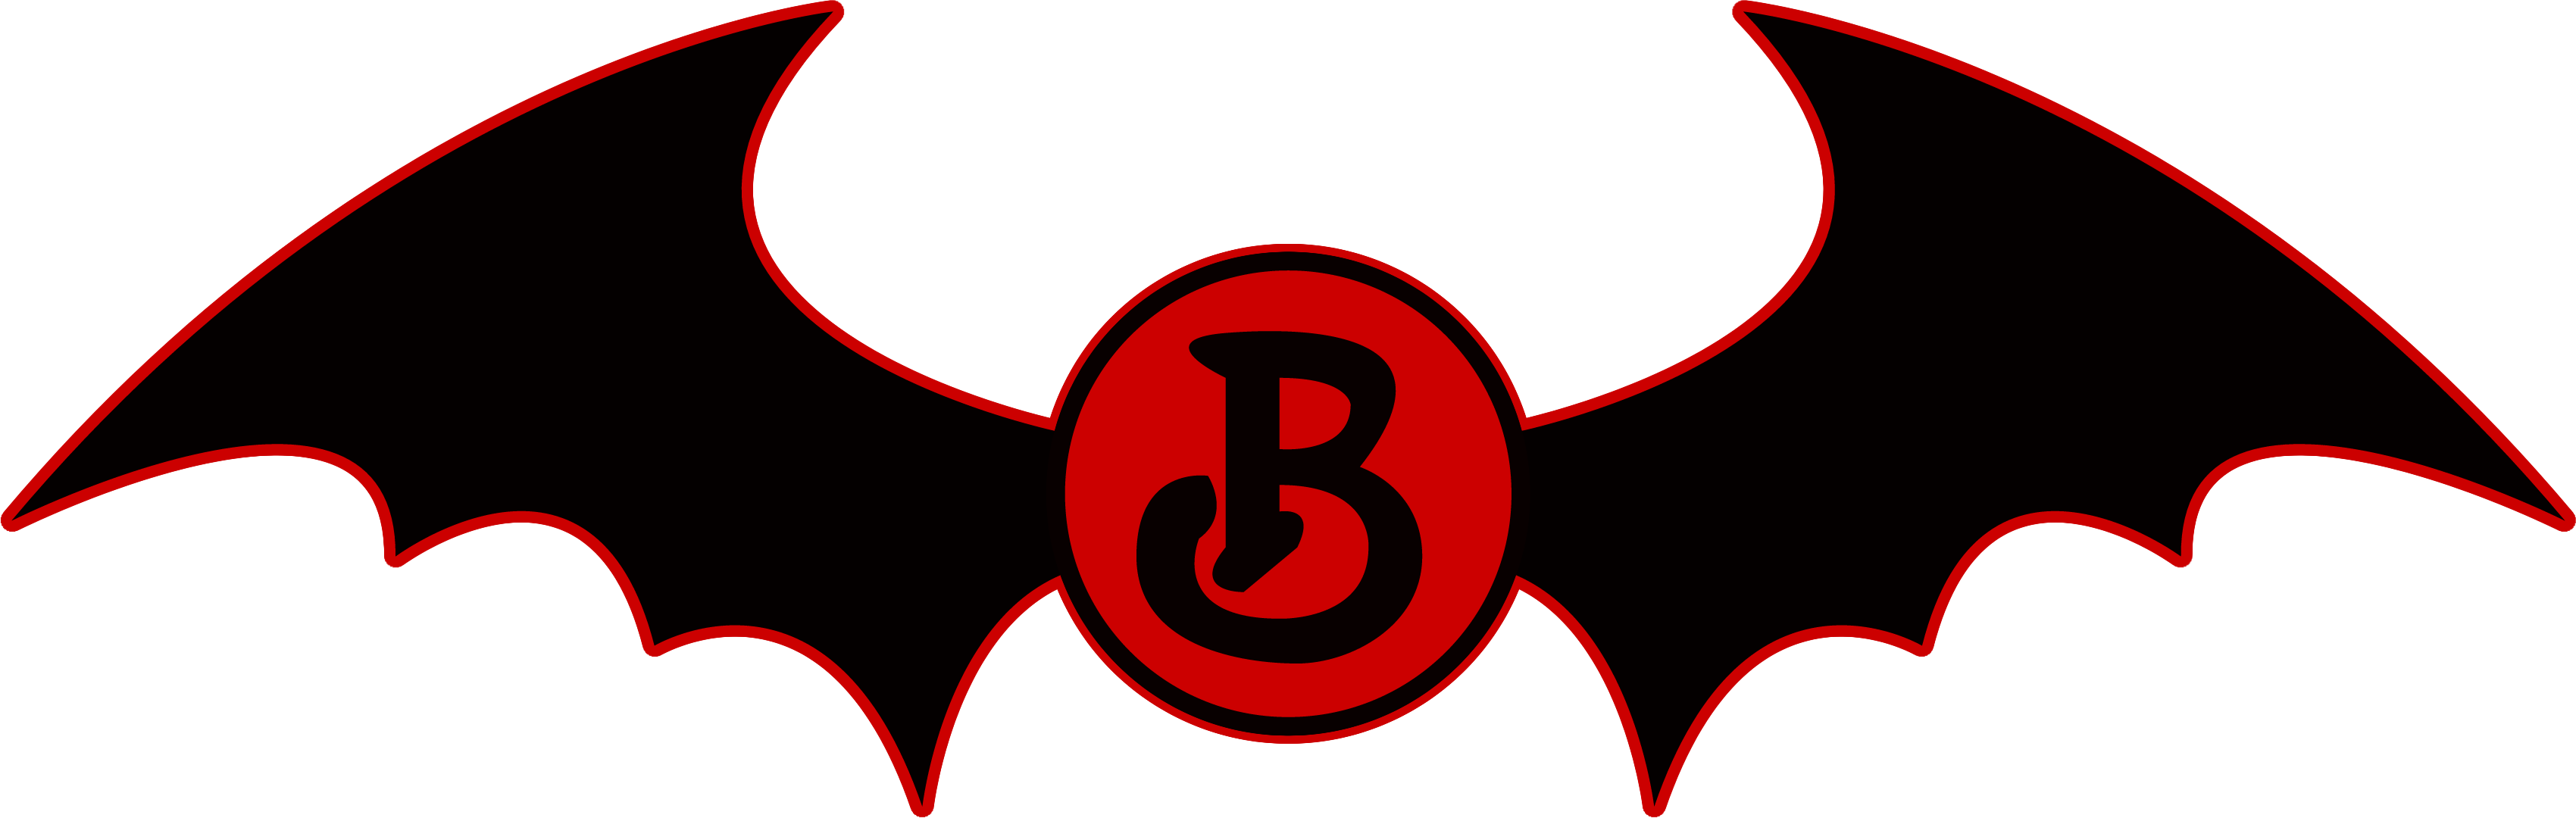 Ballycastle Bats Quidditch Team logo